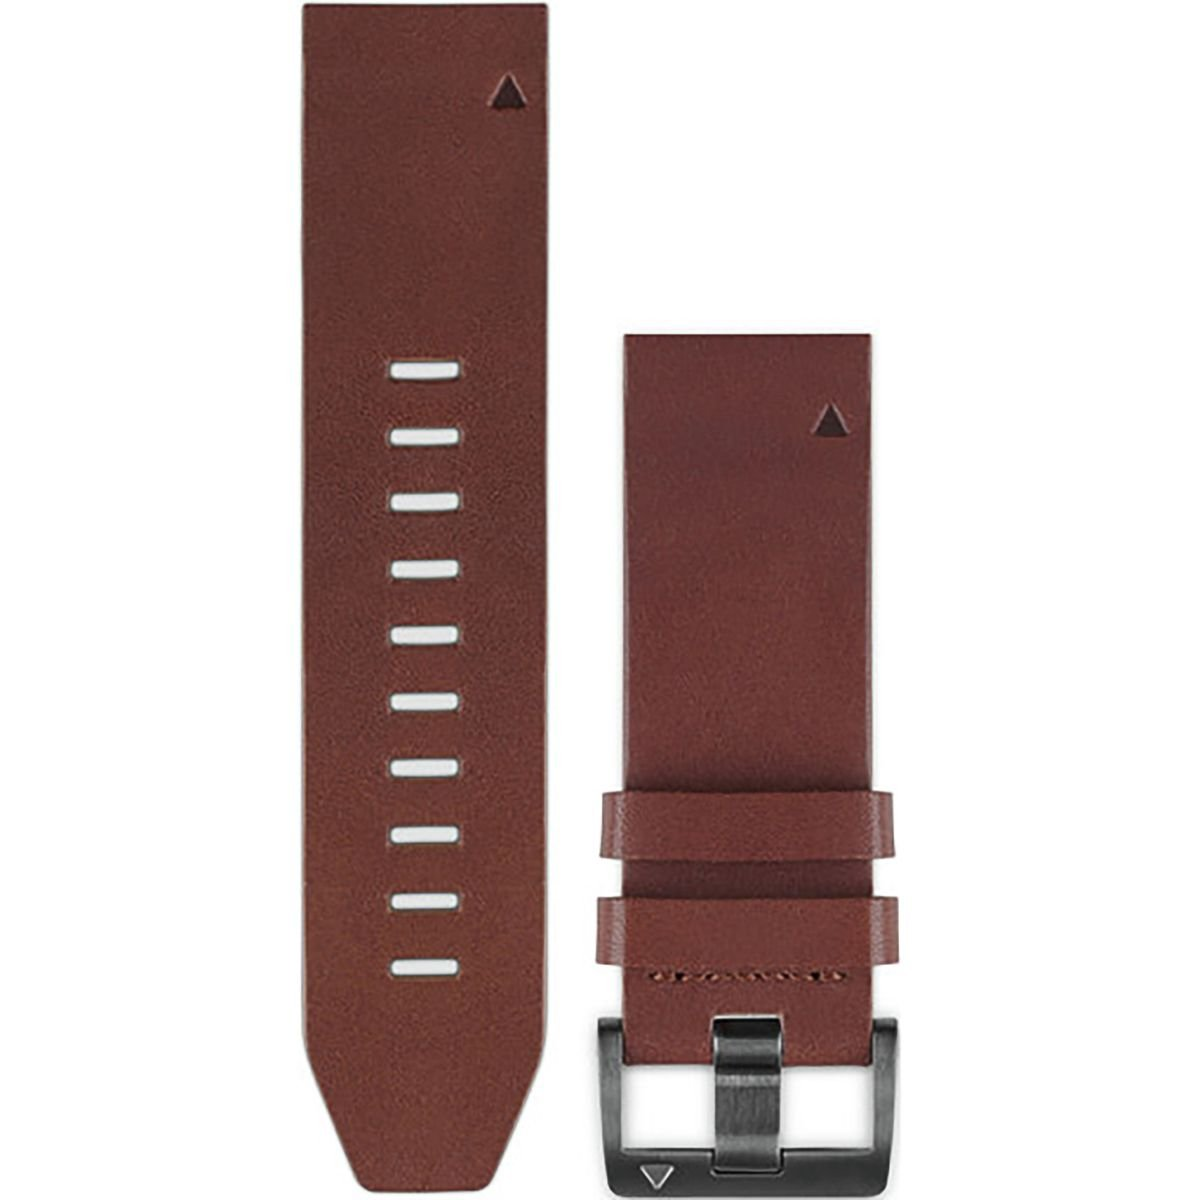 Garmin QuickFit 22 Watch Band Brown Leather, One Size by Garmin (Image #1)